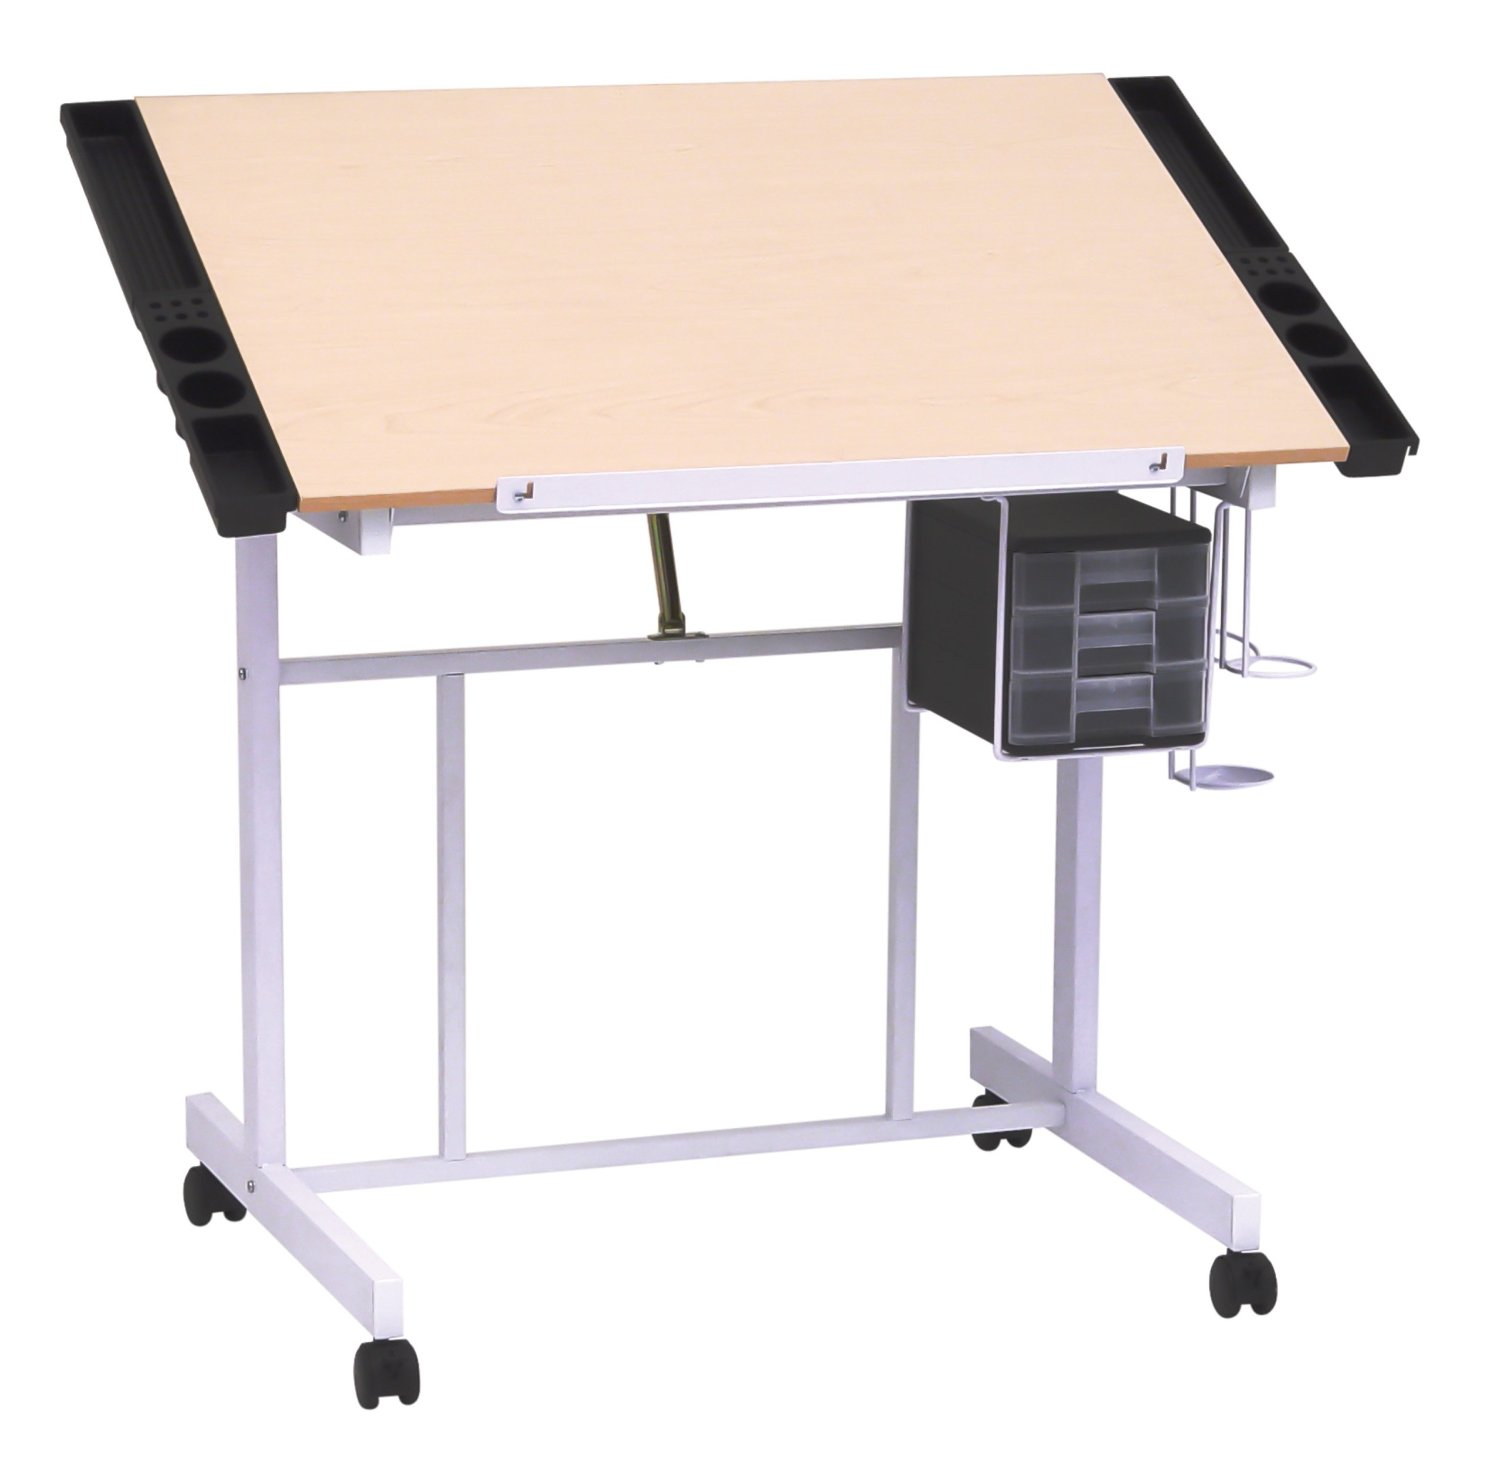 Top 10 Best Drafting Table Reviews — A Guide to Finding the Perfect One in 2019